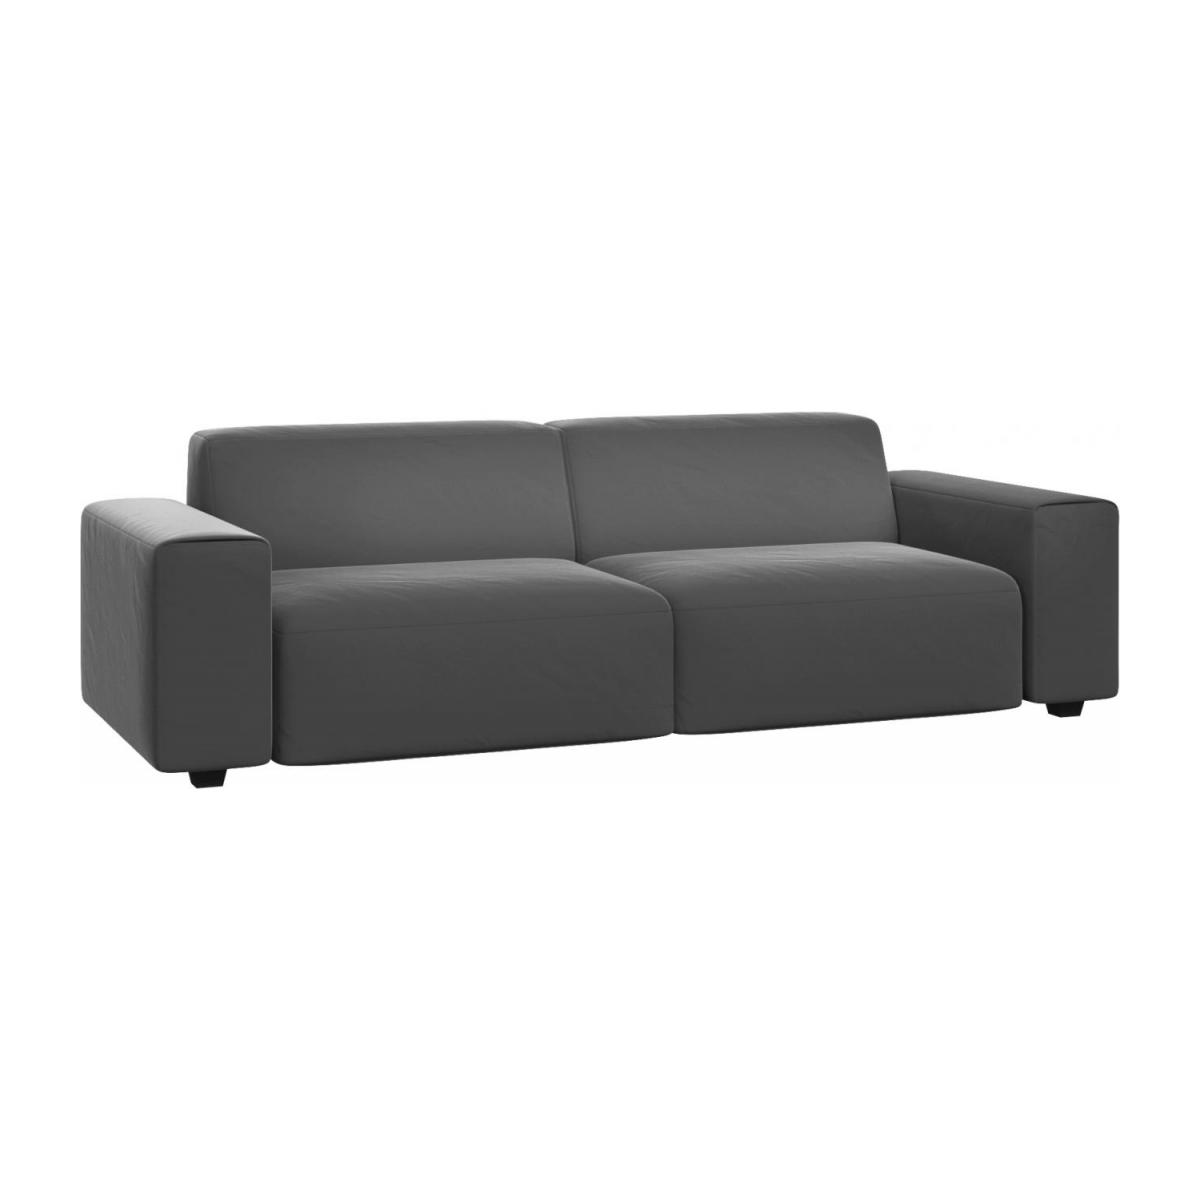 posada 4 sitzer sofa aus samt grau habitat. Black Bedroom Furniture Sets. Home Design Ideas